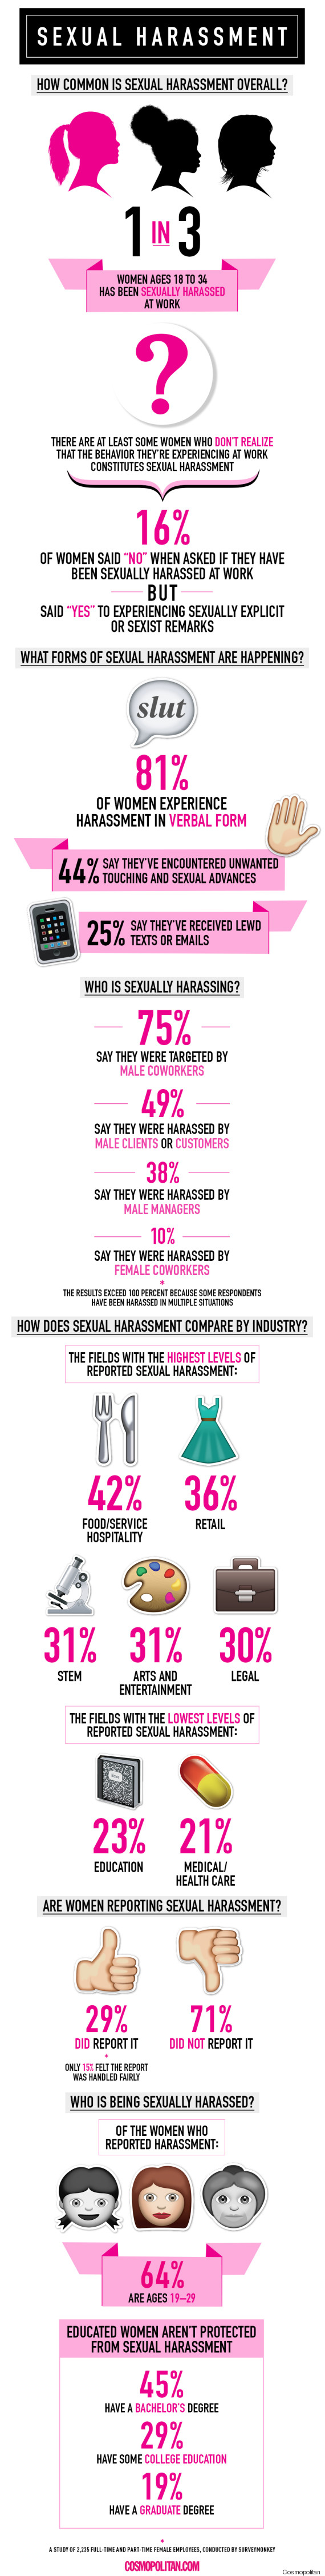 Sexual Harassment In The Workplace Statistics 2015